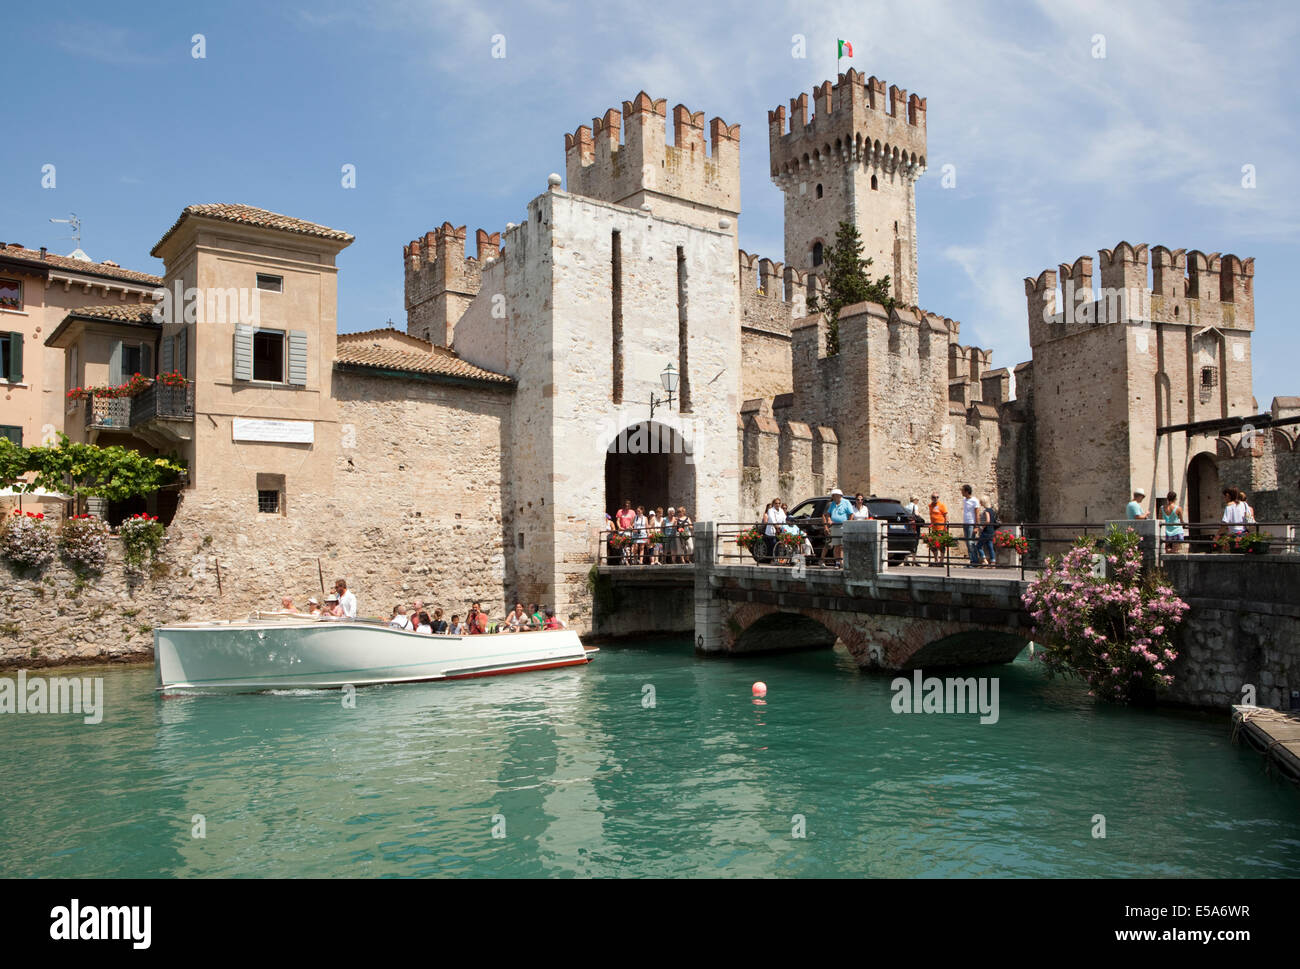 Tourists cross the bridge into the Scaliger Castle (or Rocca Scaligera) in Sirmione, Lake Garda, Italy - Stock Image